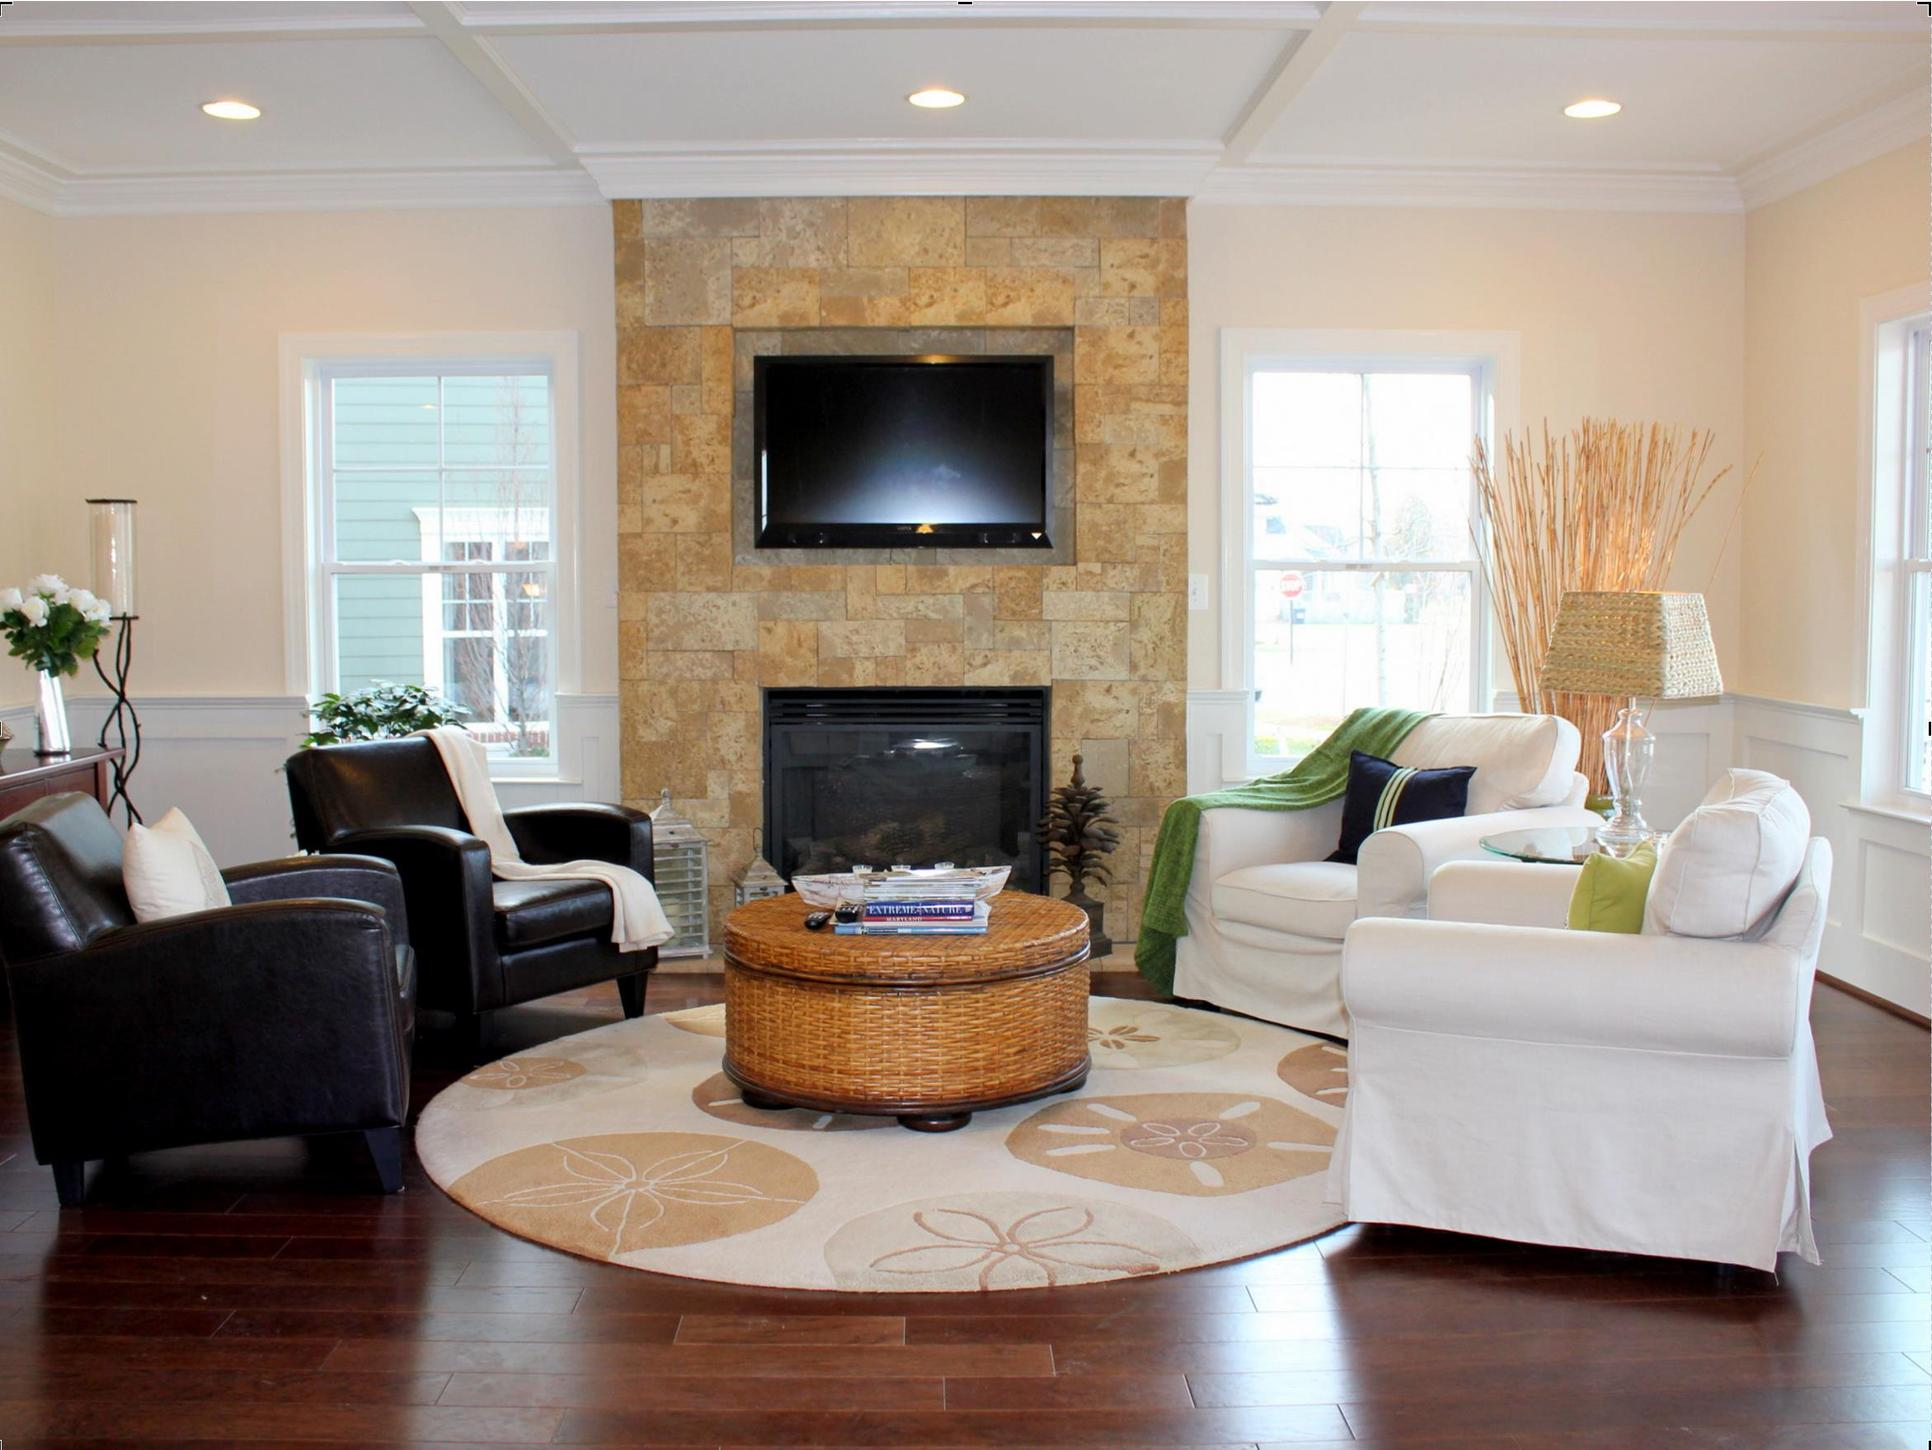 Kitty Hawk Legacy:Living Room with Coral Reef Wall Fireplace (Model Home Image)